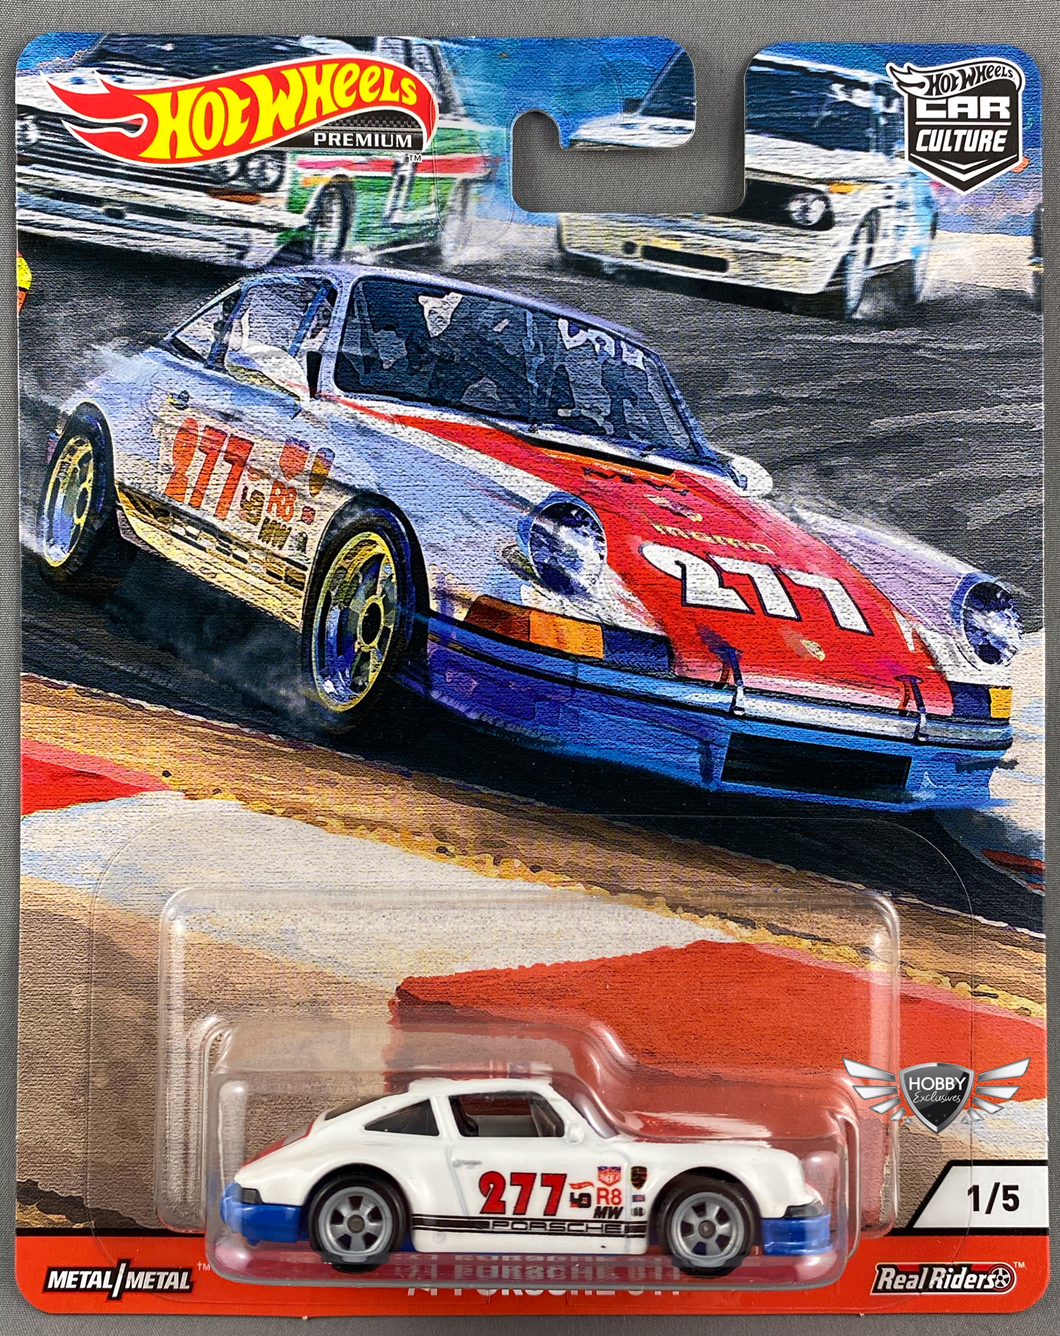 71 Porsche 911 Door Slammers Hot Wheels Car Culture #1